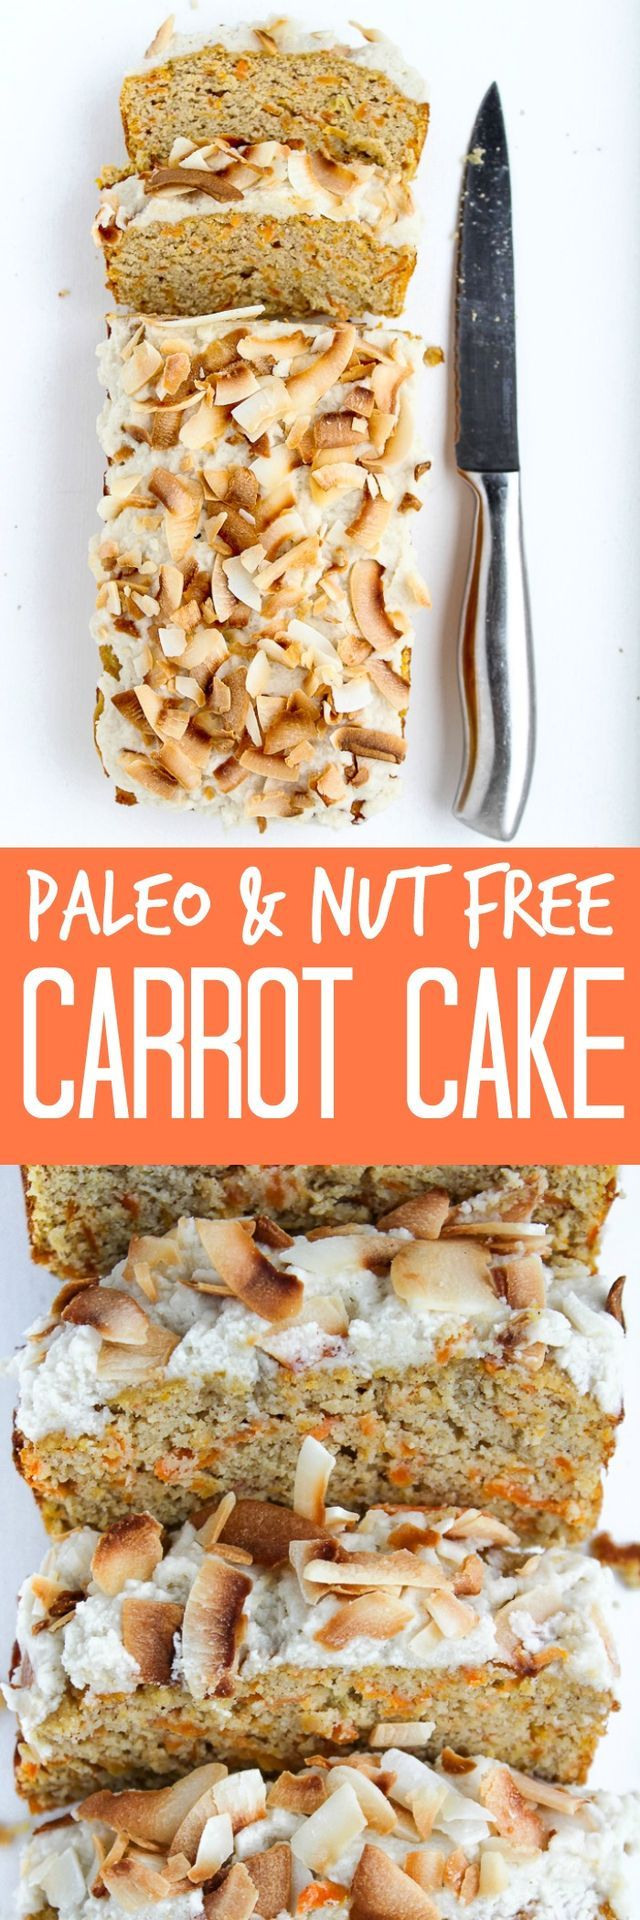 Nut Free Paleo Carrot Cake | A healthier, gluten free and dairy free alternative to carrot cake!  What would you call this? Carrot Cake? Carrot Loaf? Carrot Bread? Carrot Cake Loaf Bread? Is that too